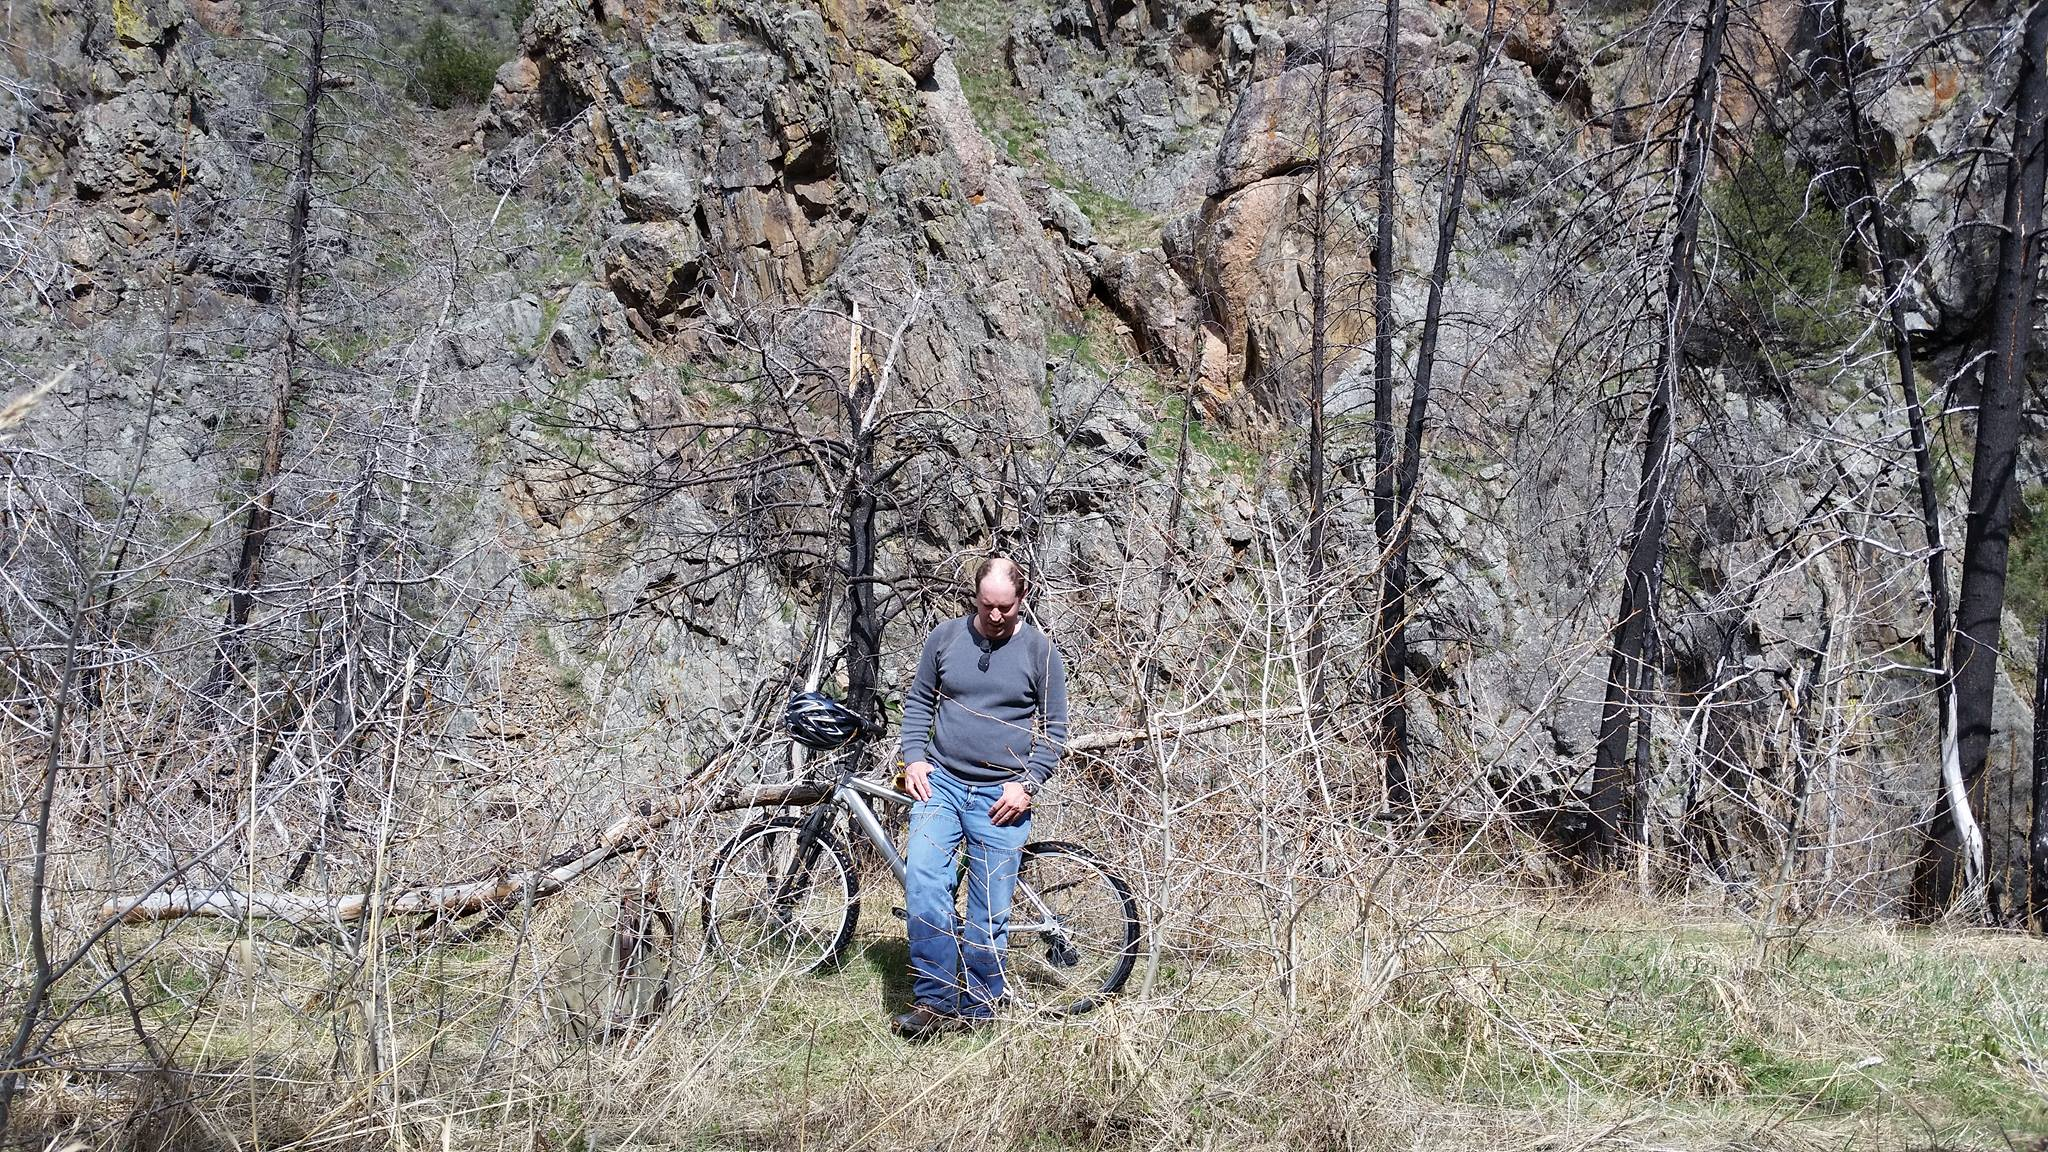 mtbtrail, hewlettgulch, mountainbike, gettingoutmore